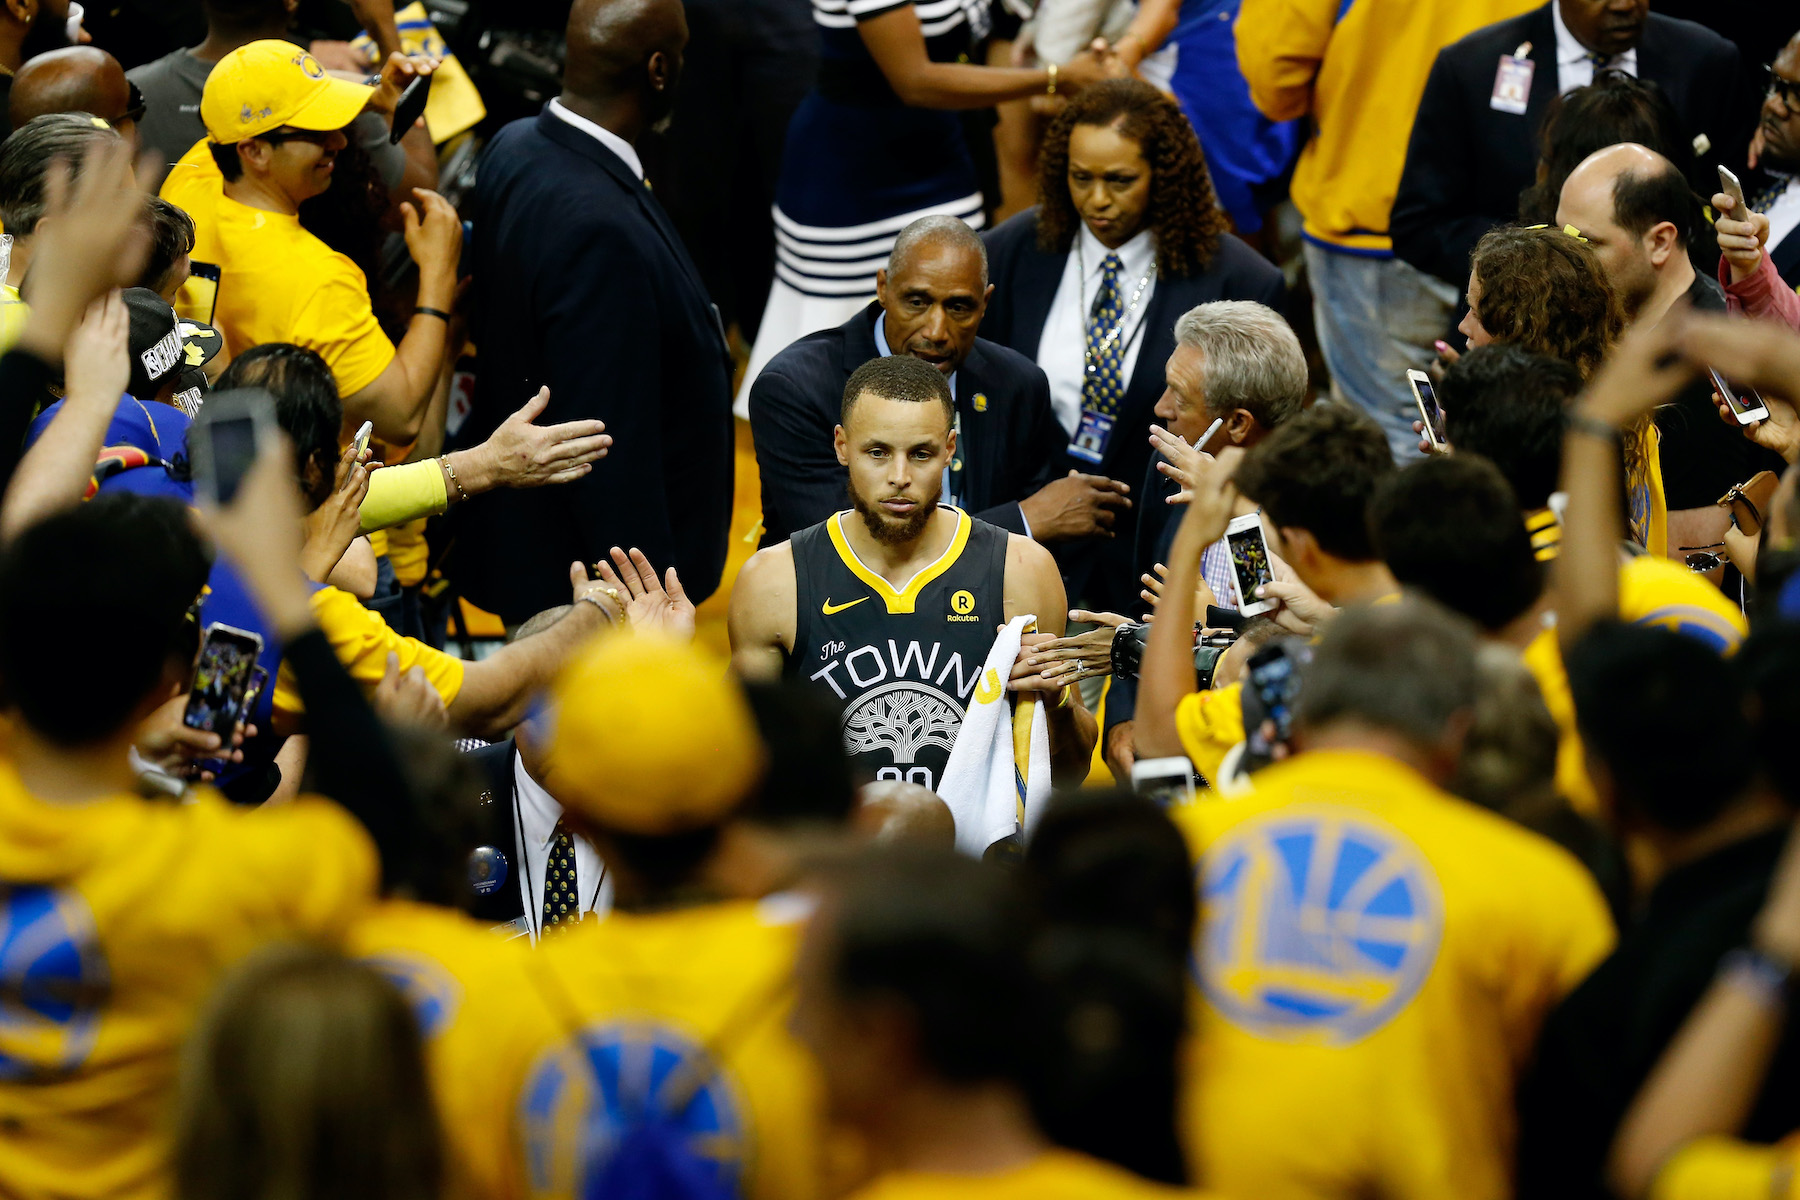 The Golden State Warriors Have the NBA's Most Passionate Fans According to a New Study